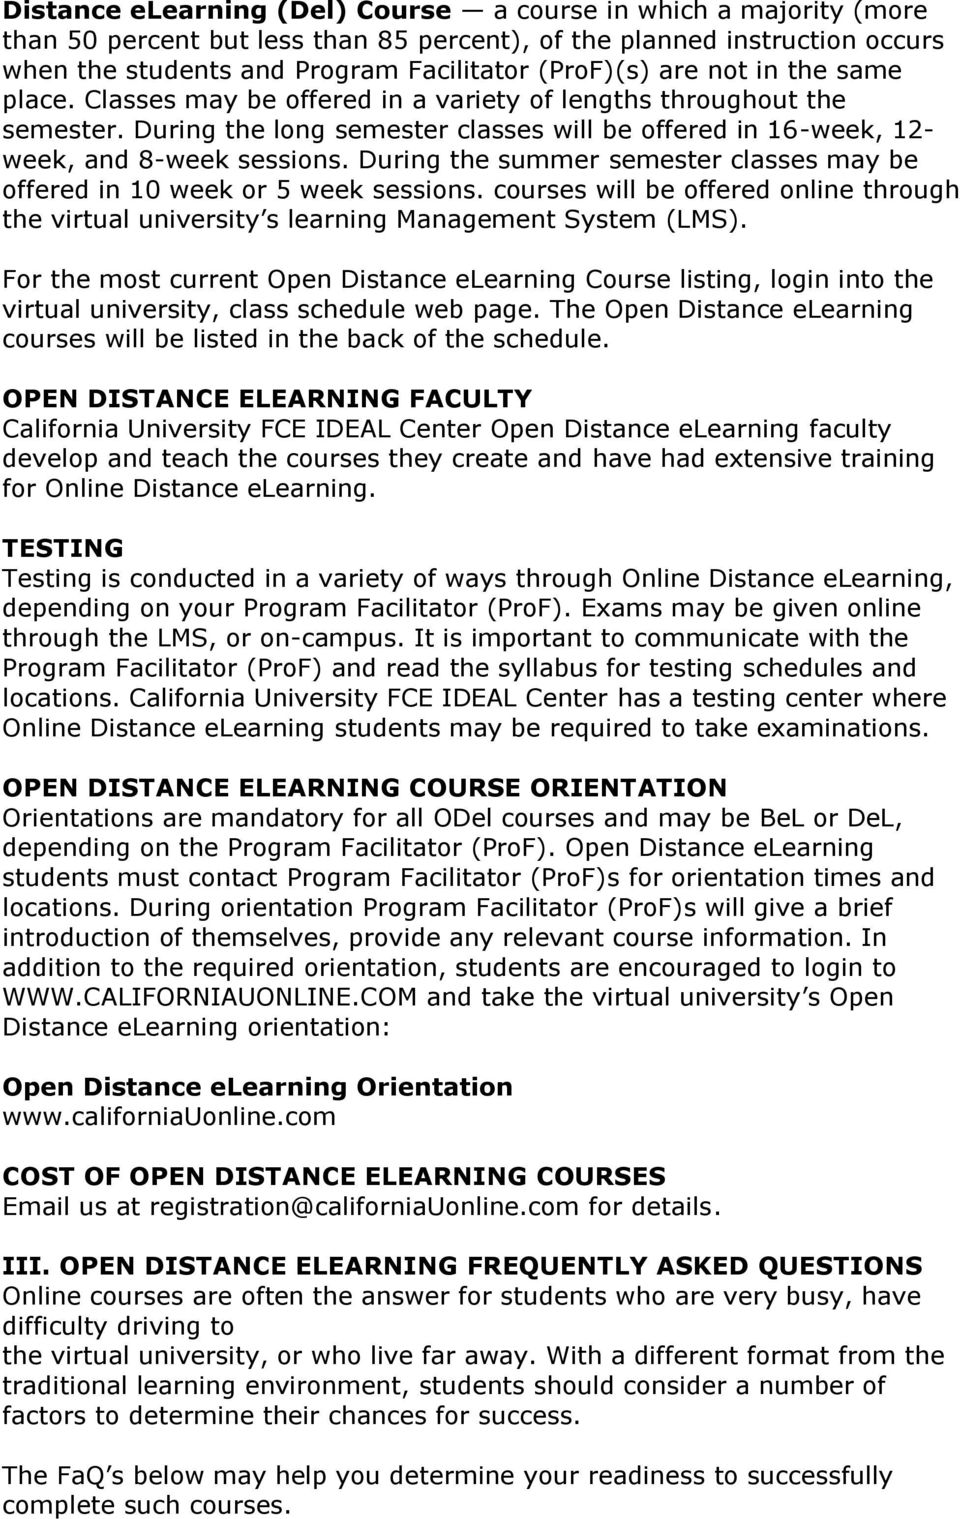 During the summer semester classes may be offered in 10 week or 5 week sessions. courses will be offered online through the virtual university s learning Management System (LMS).